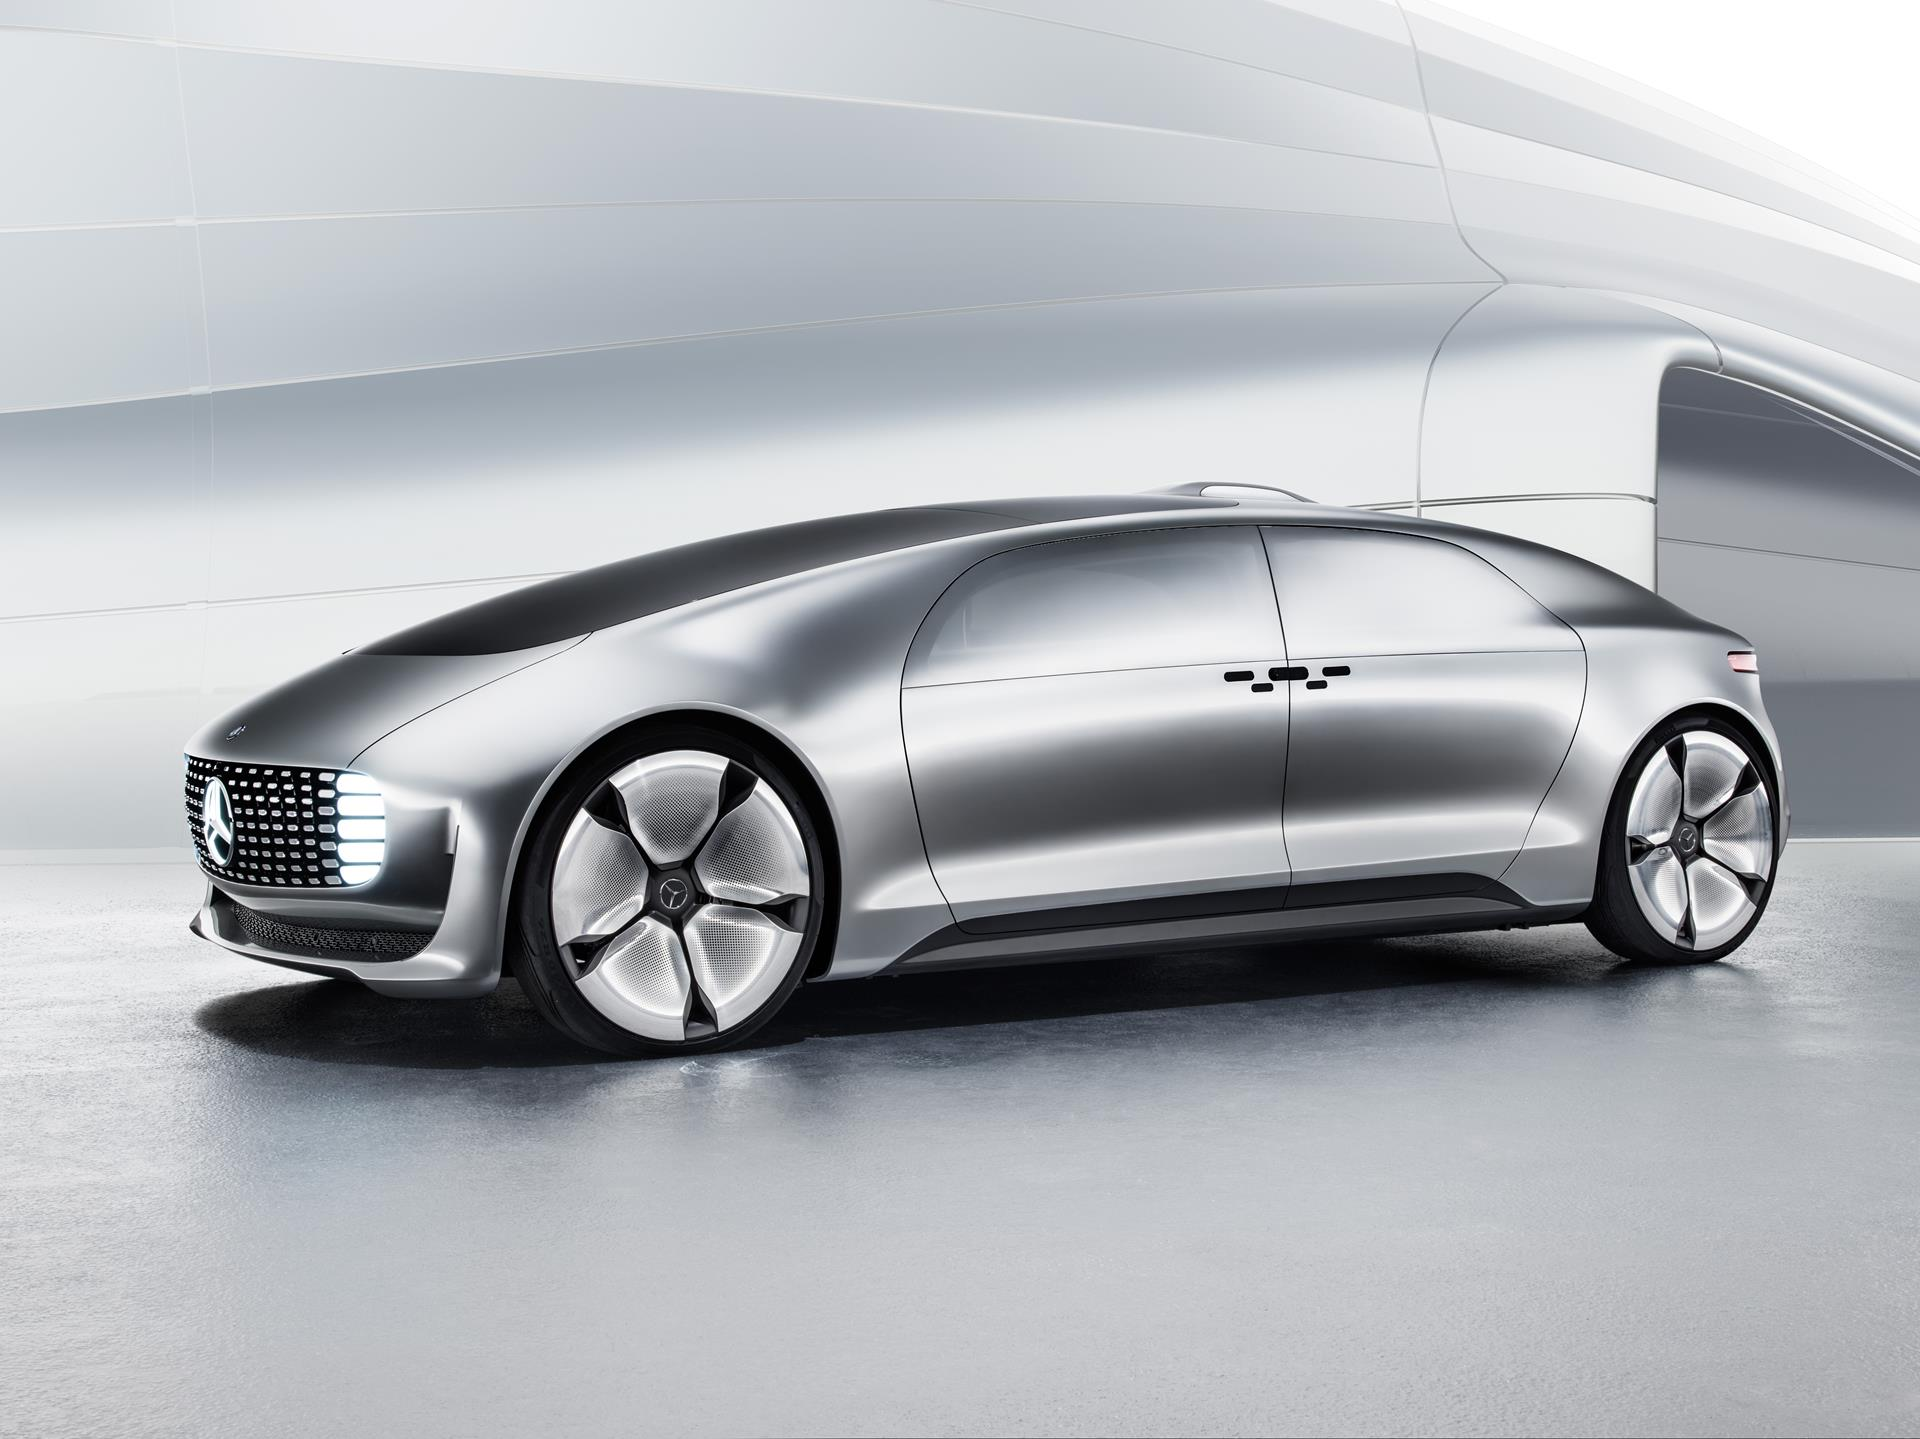 2015 mercedes benz f 015 luxury in motion concept for Cars of mercedes benz